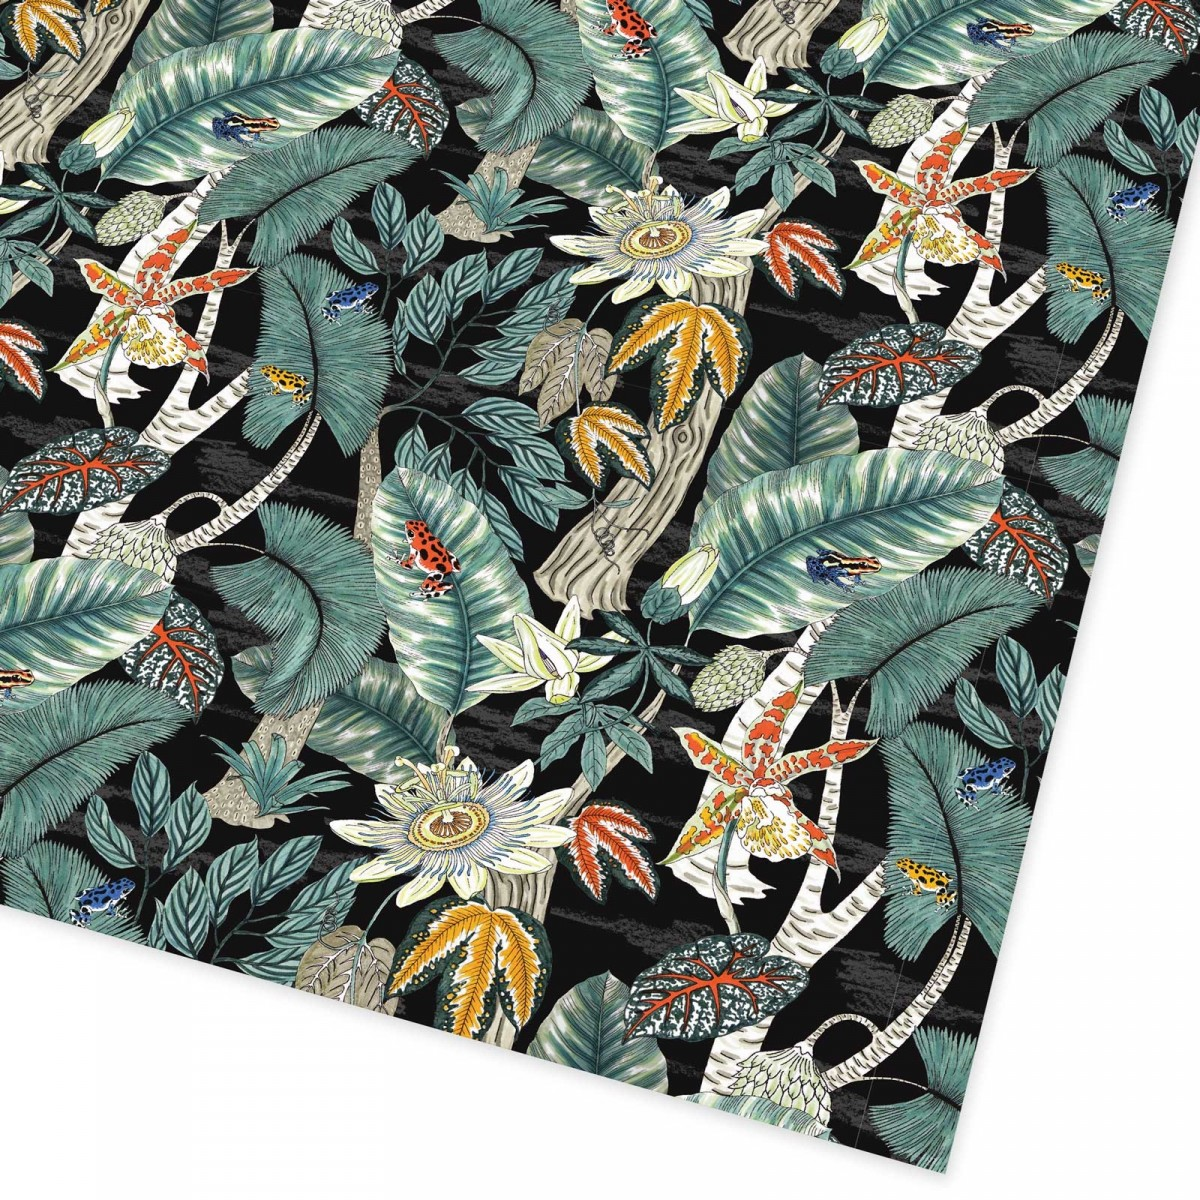 Rainforest Gift Wrap - Elegant yet cool! It even has lil' froggies on it.